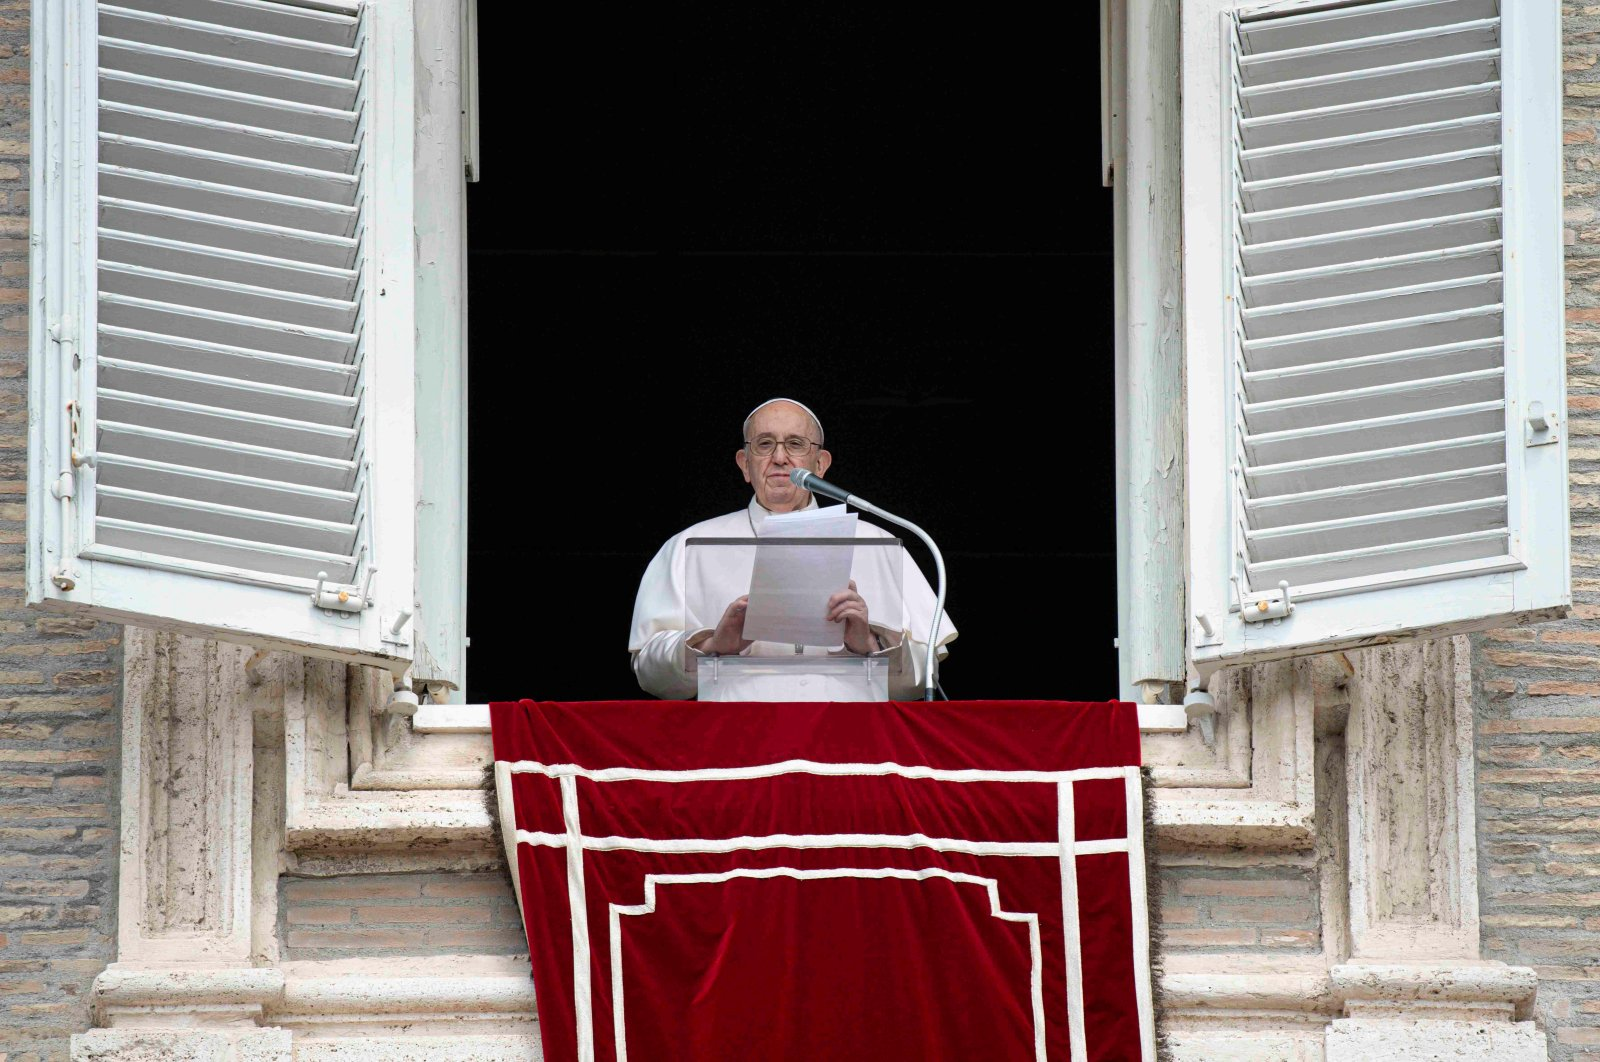 Pope Francis leads Angelus prayer from his window overlooking St.Peter's Square at the Vatican, Aug. 8, 2021. (Reuters Photo)